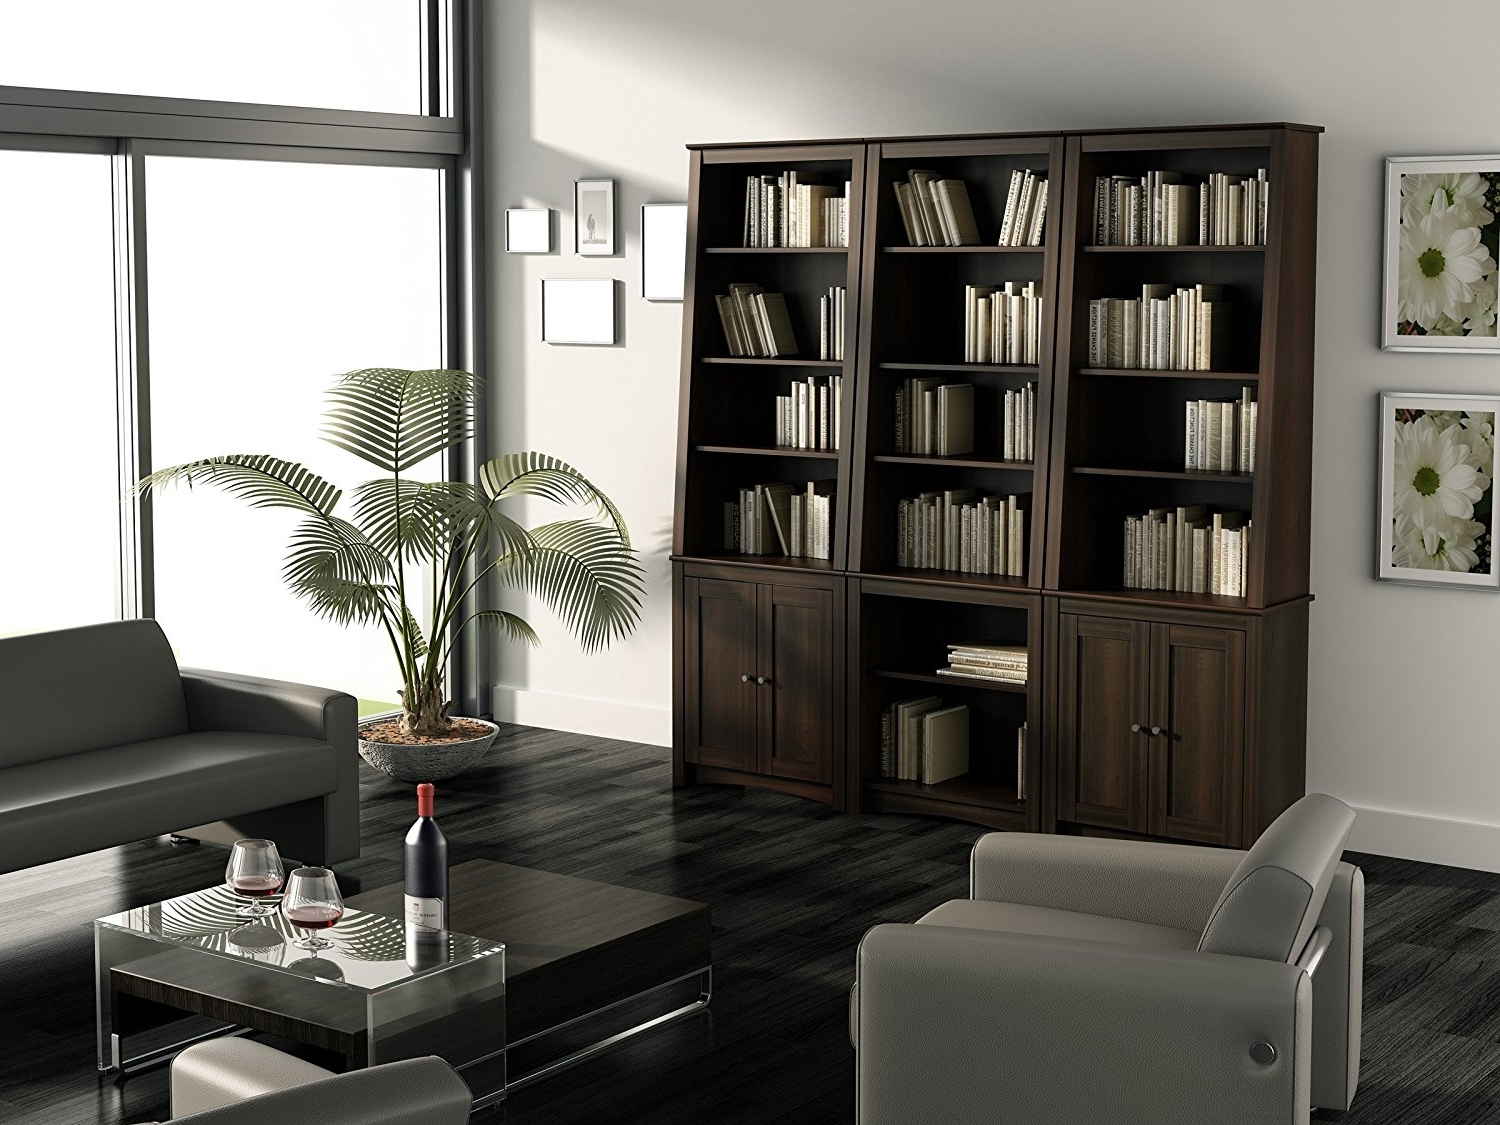 Espresso Bookcases Intended For Recent Amazon: Espresso Tall Slant Back Bookcase: Kitchen & Dining (Gallery 6 of 15)